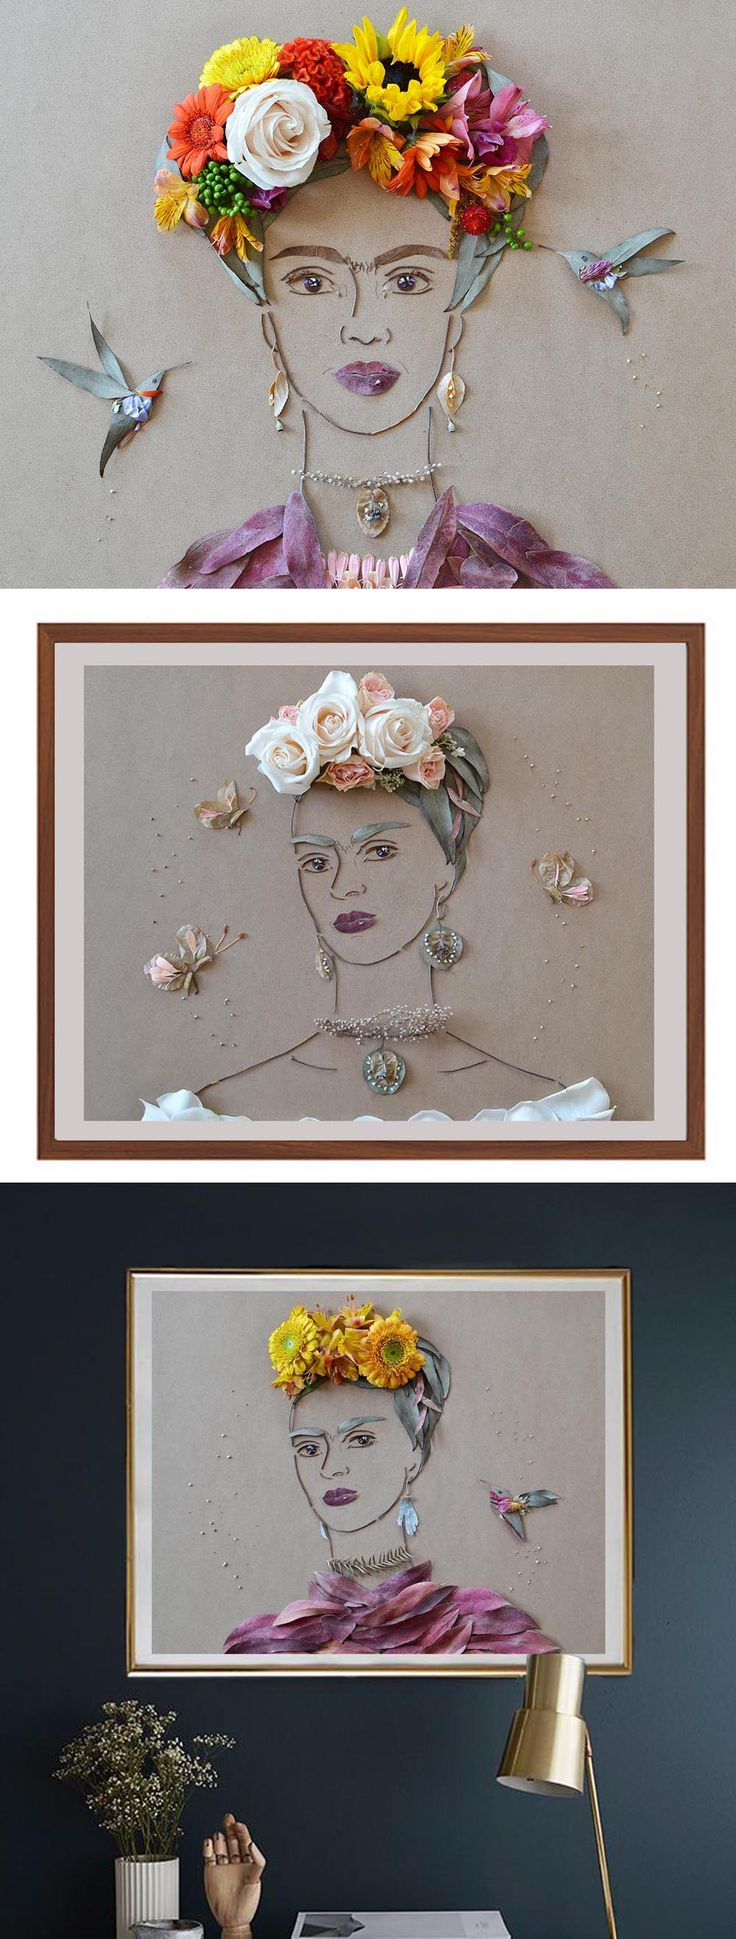 Frida art! Frida Kahlo made completely of flowers and printed in limited edition to brighten your space!